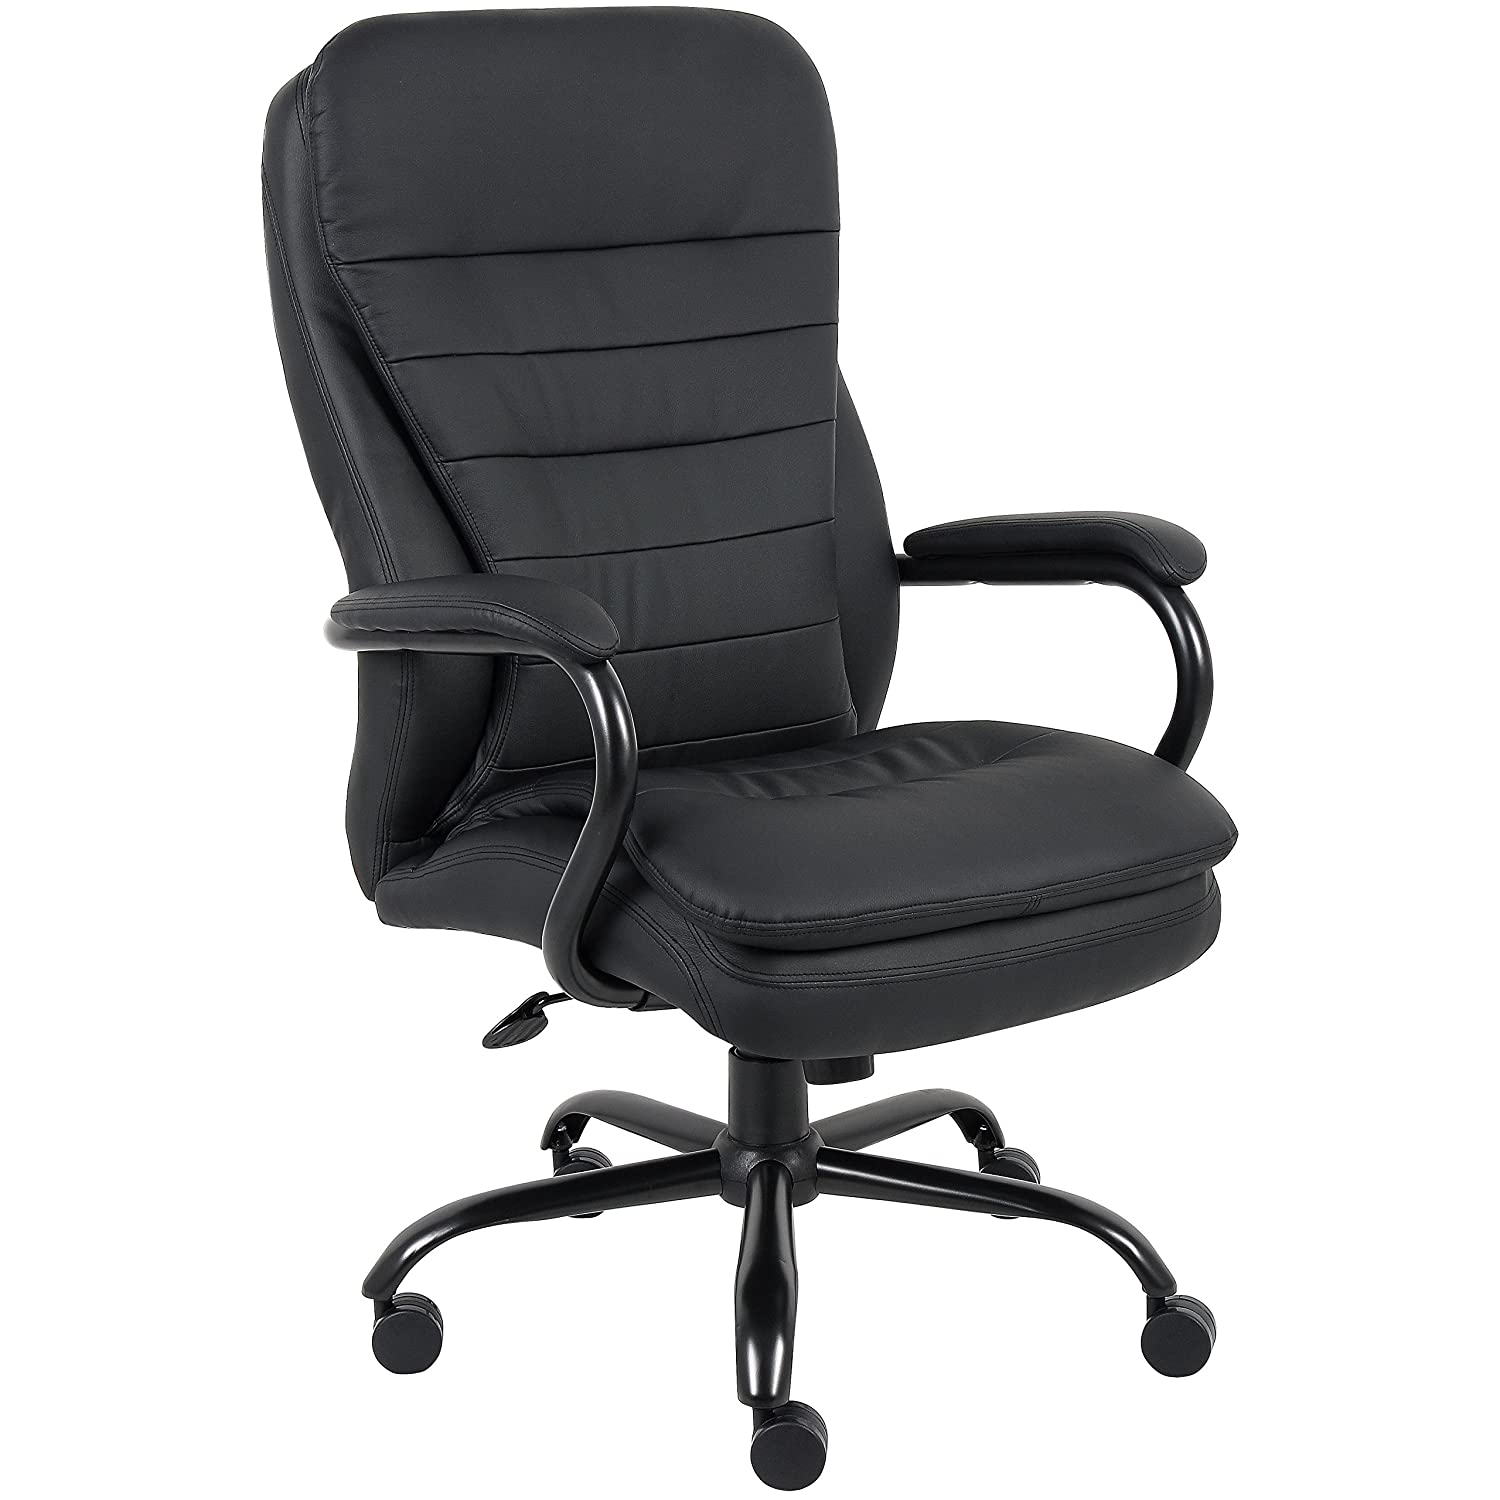 Plus Size fice Chairs Up To 300 LBS 350 LBS fice Chairs